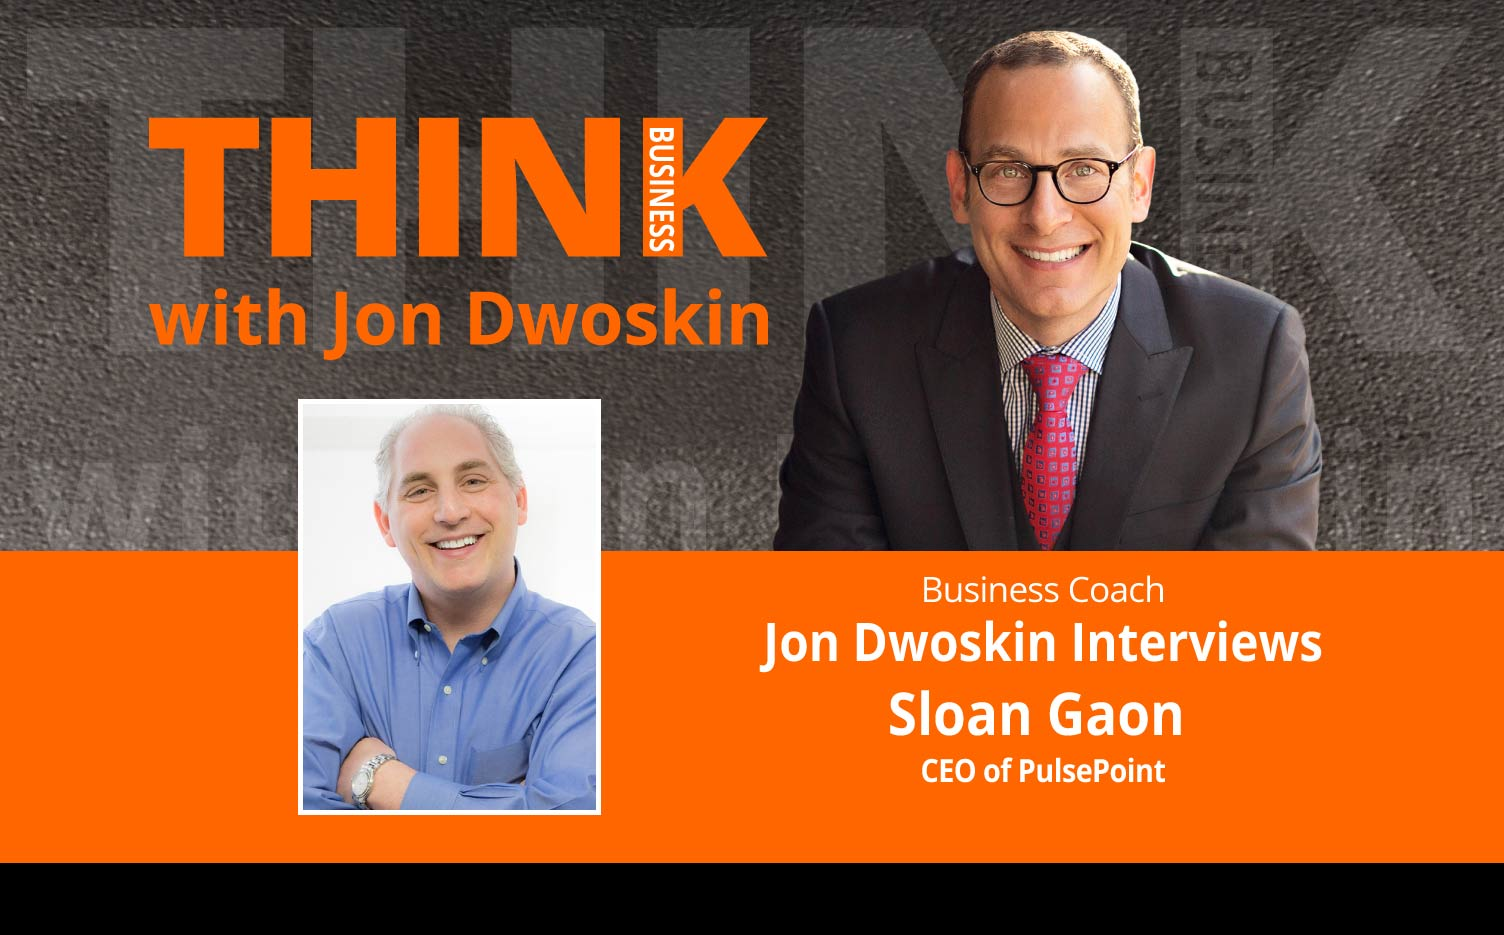 THINK Business Podcast: Jon Dwoskin Interviews Sloan Gaon, CEO of PulsePoint